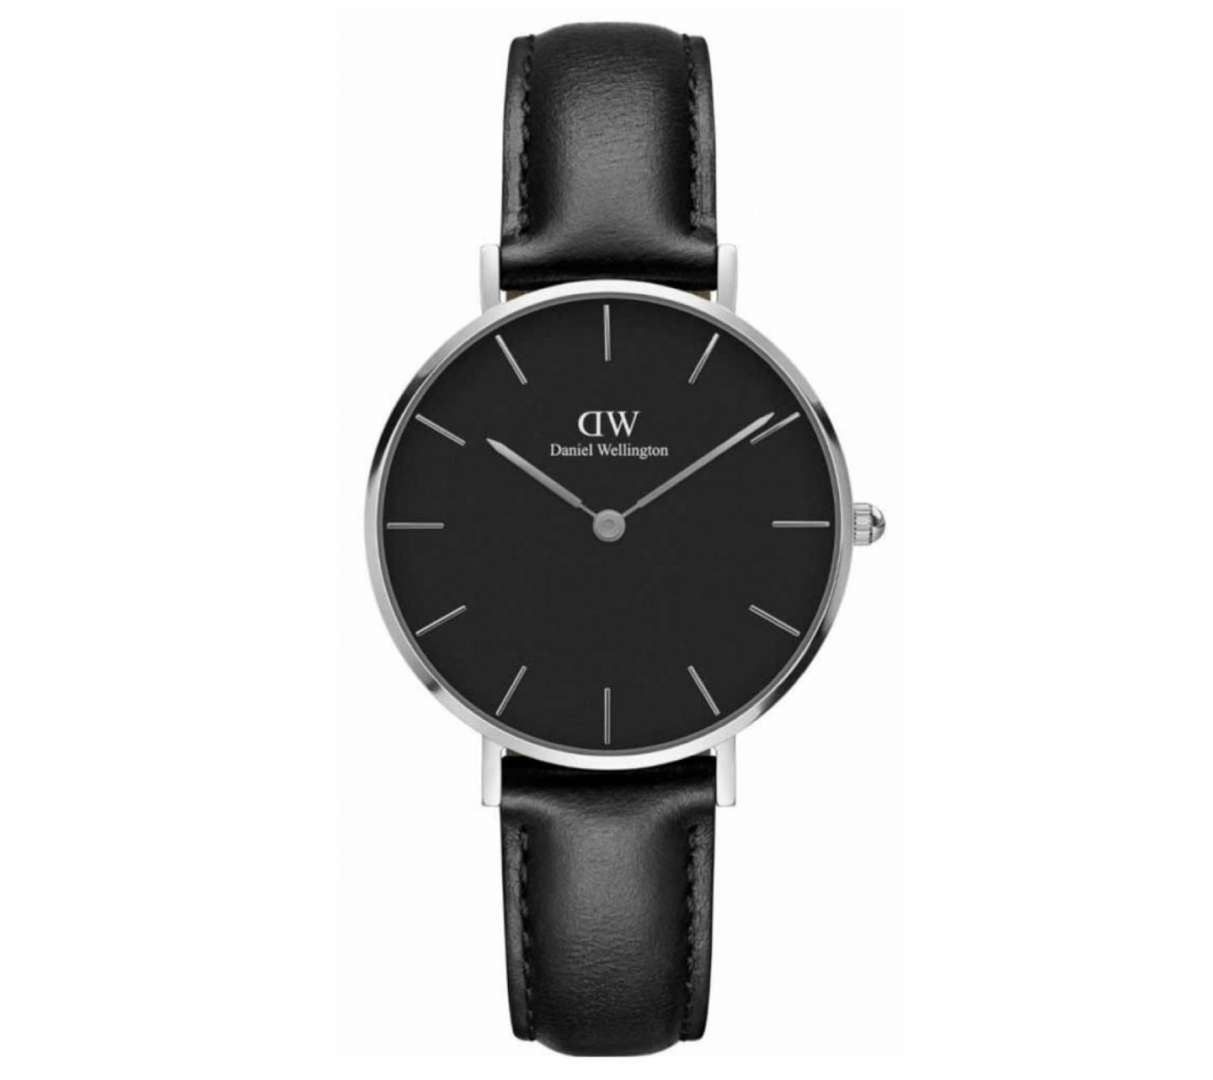 שעון יד אנלוגי daniel wellington DW00100180 דניאל וולינגטון